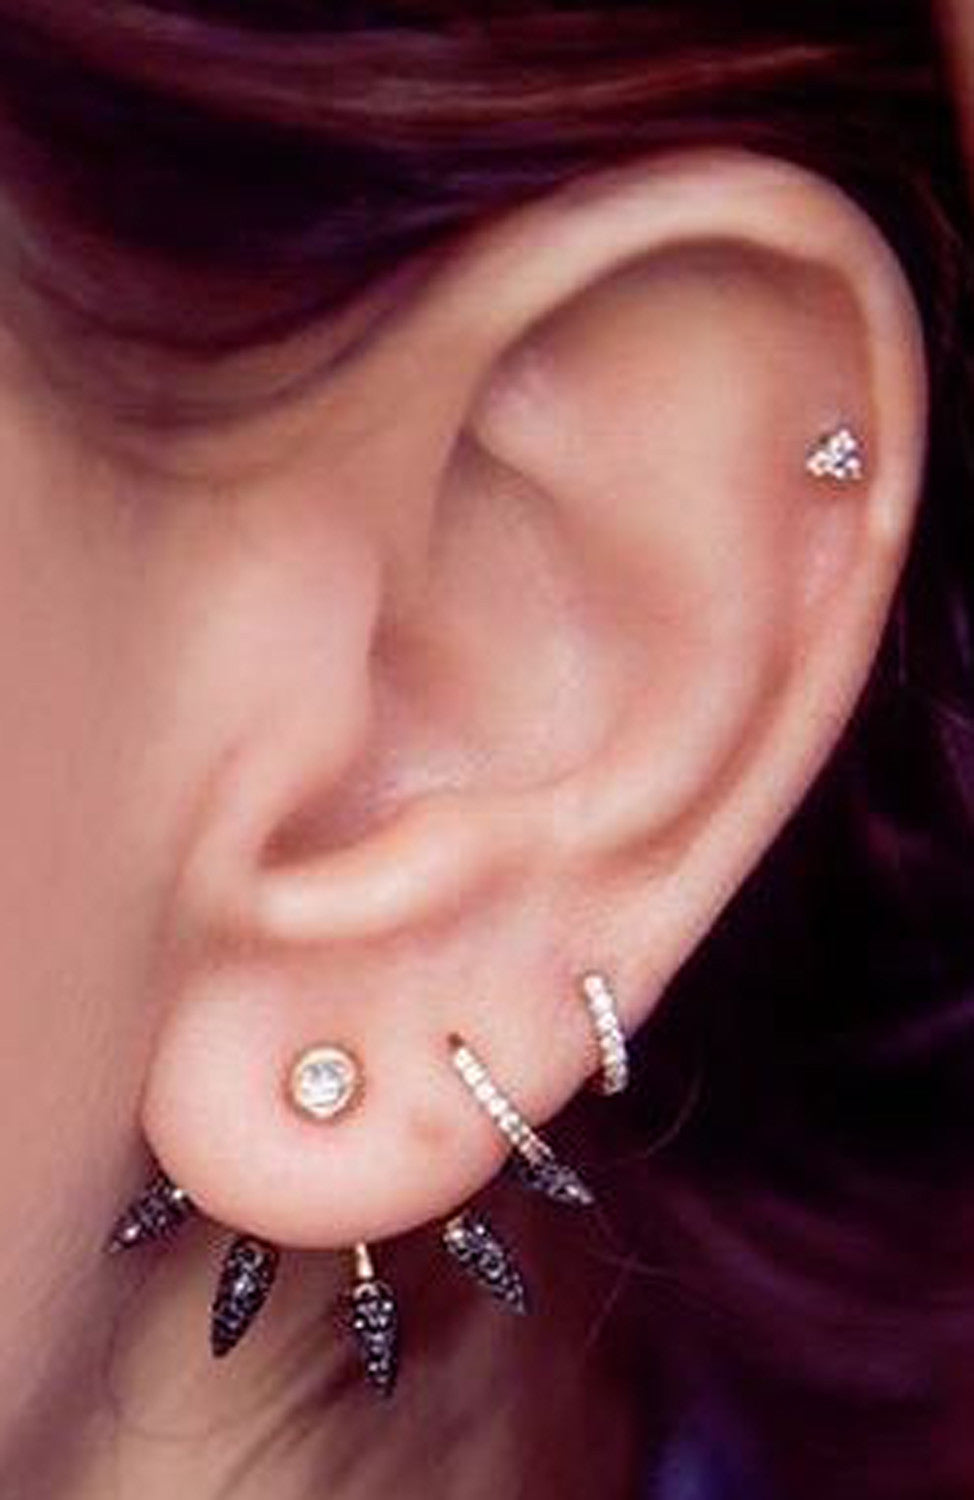 Simple Minimalistic Ear Piercing Ideas - Cool Unique Ear Jacket Earrings - Cartilage Helix Earring Jewelry Stud at MyBodiArt.com